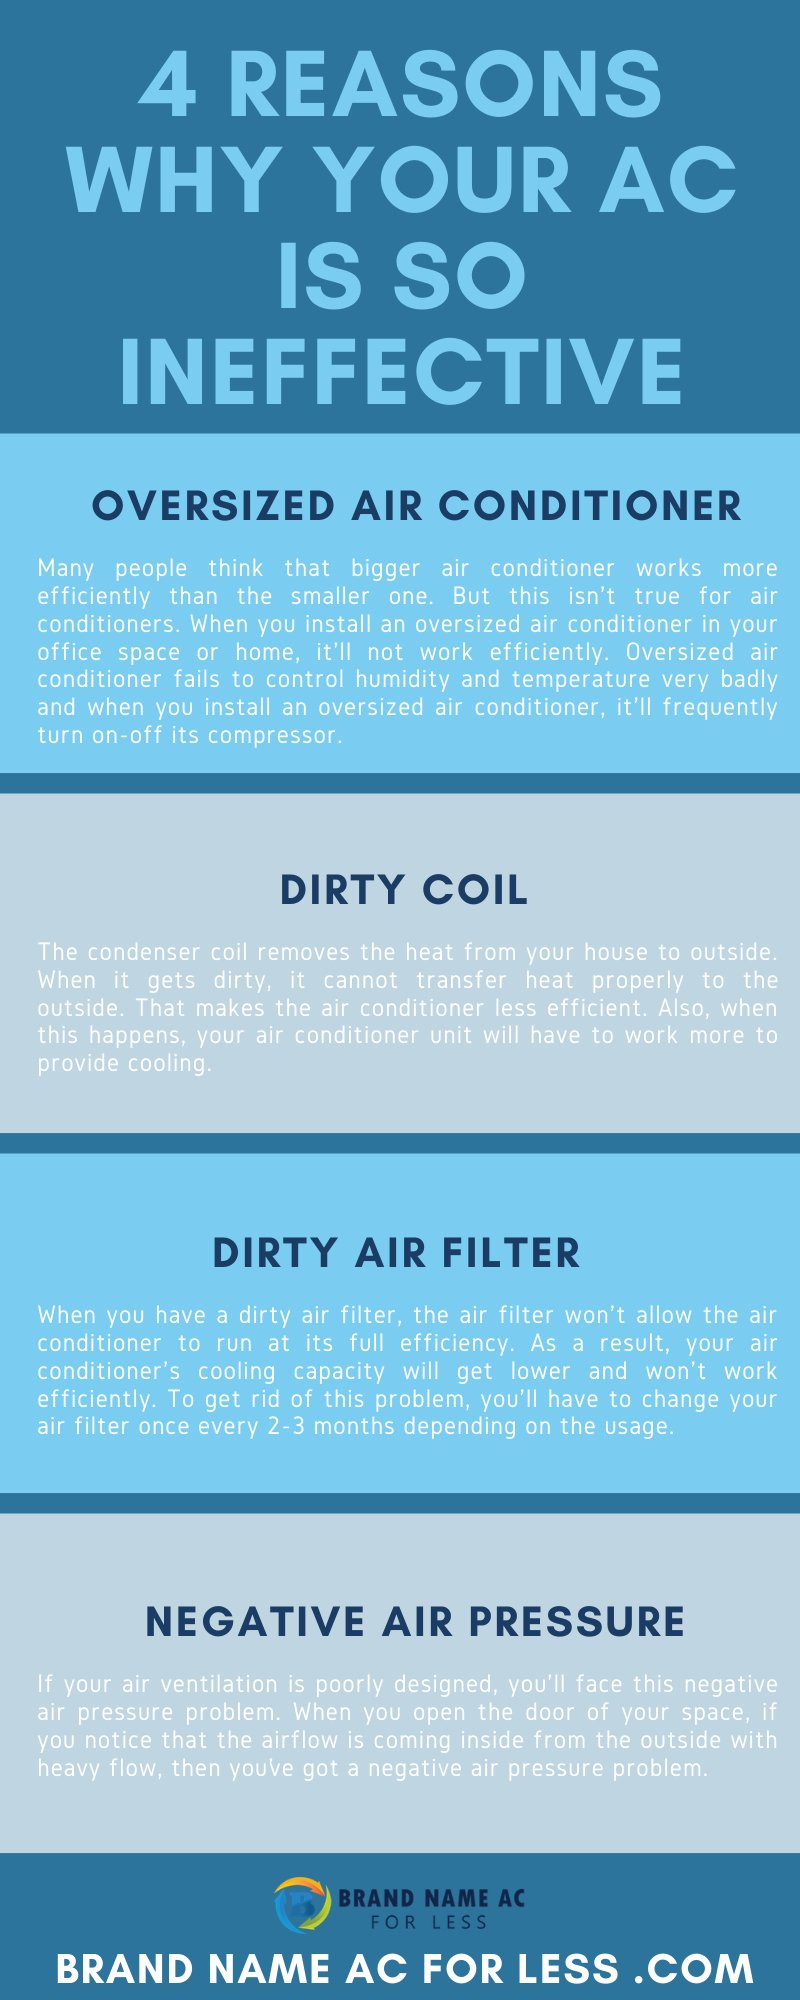 Why Your Air Conditioner is So Ineffective?